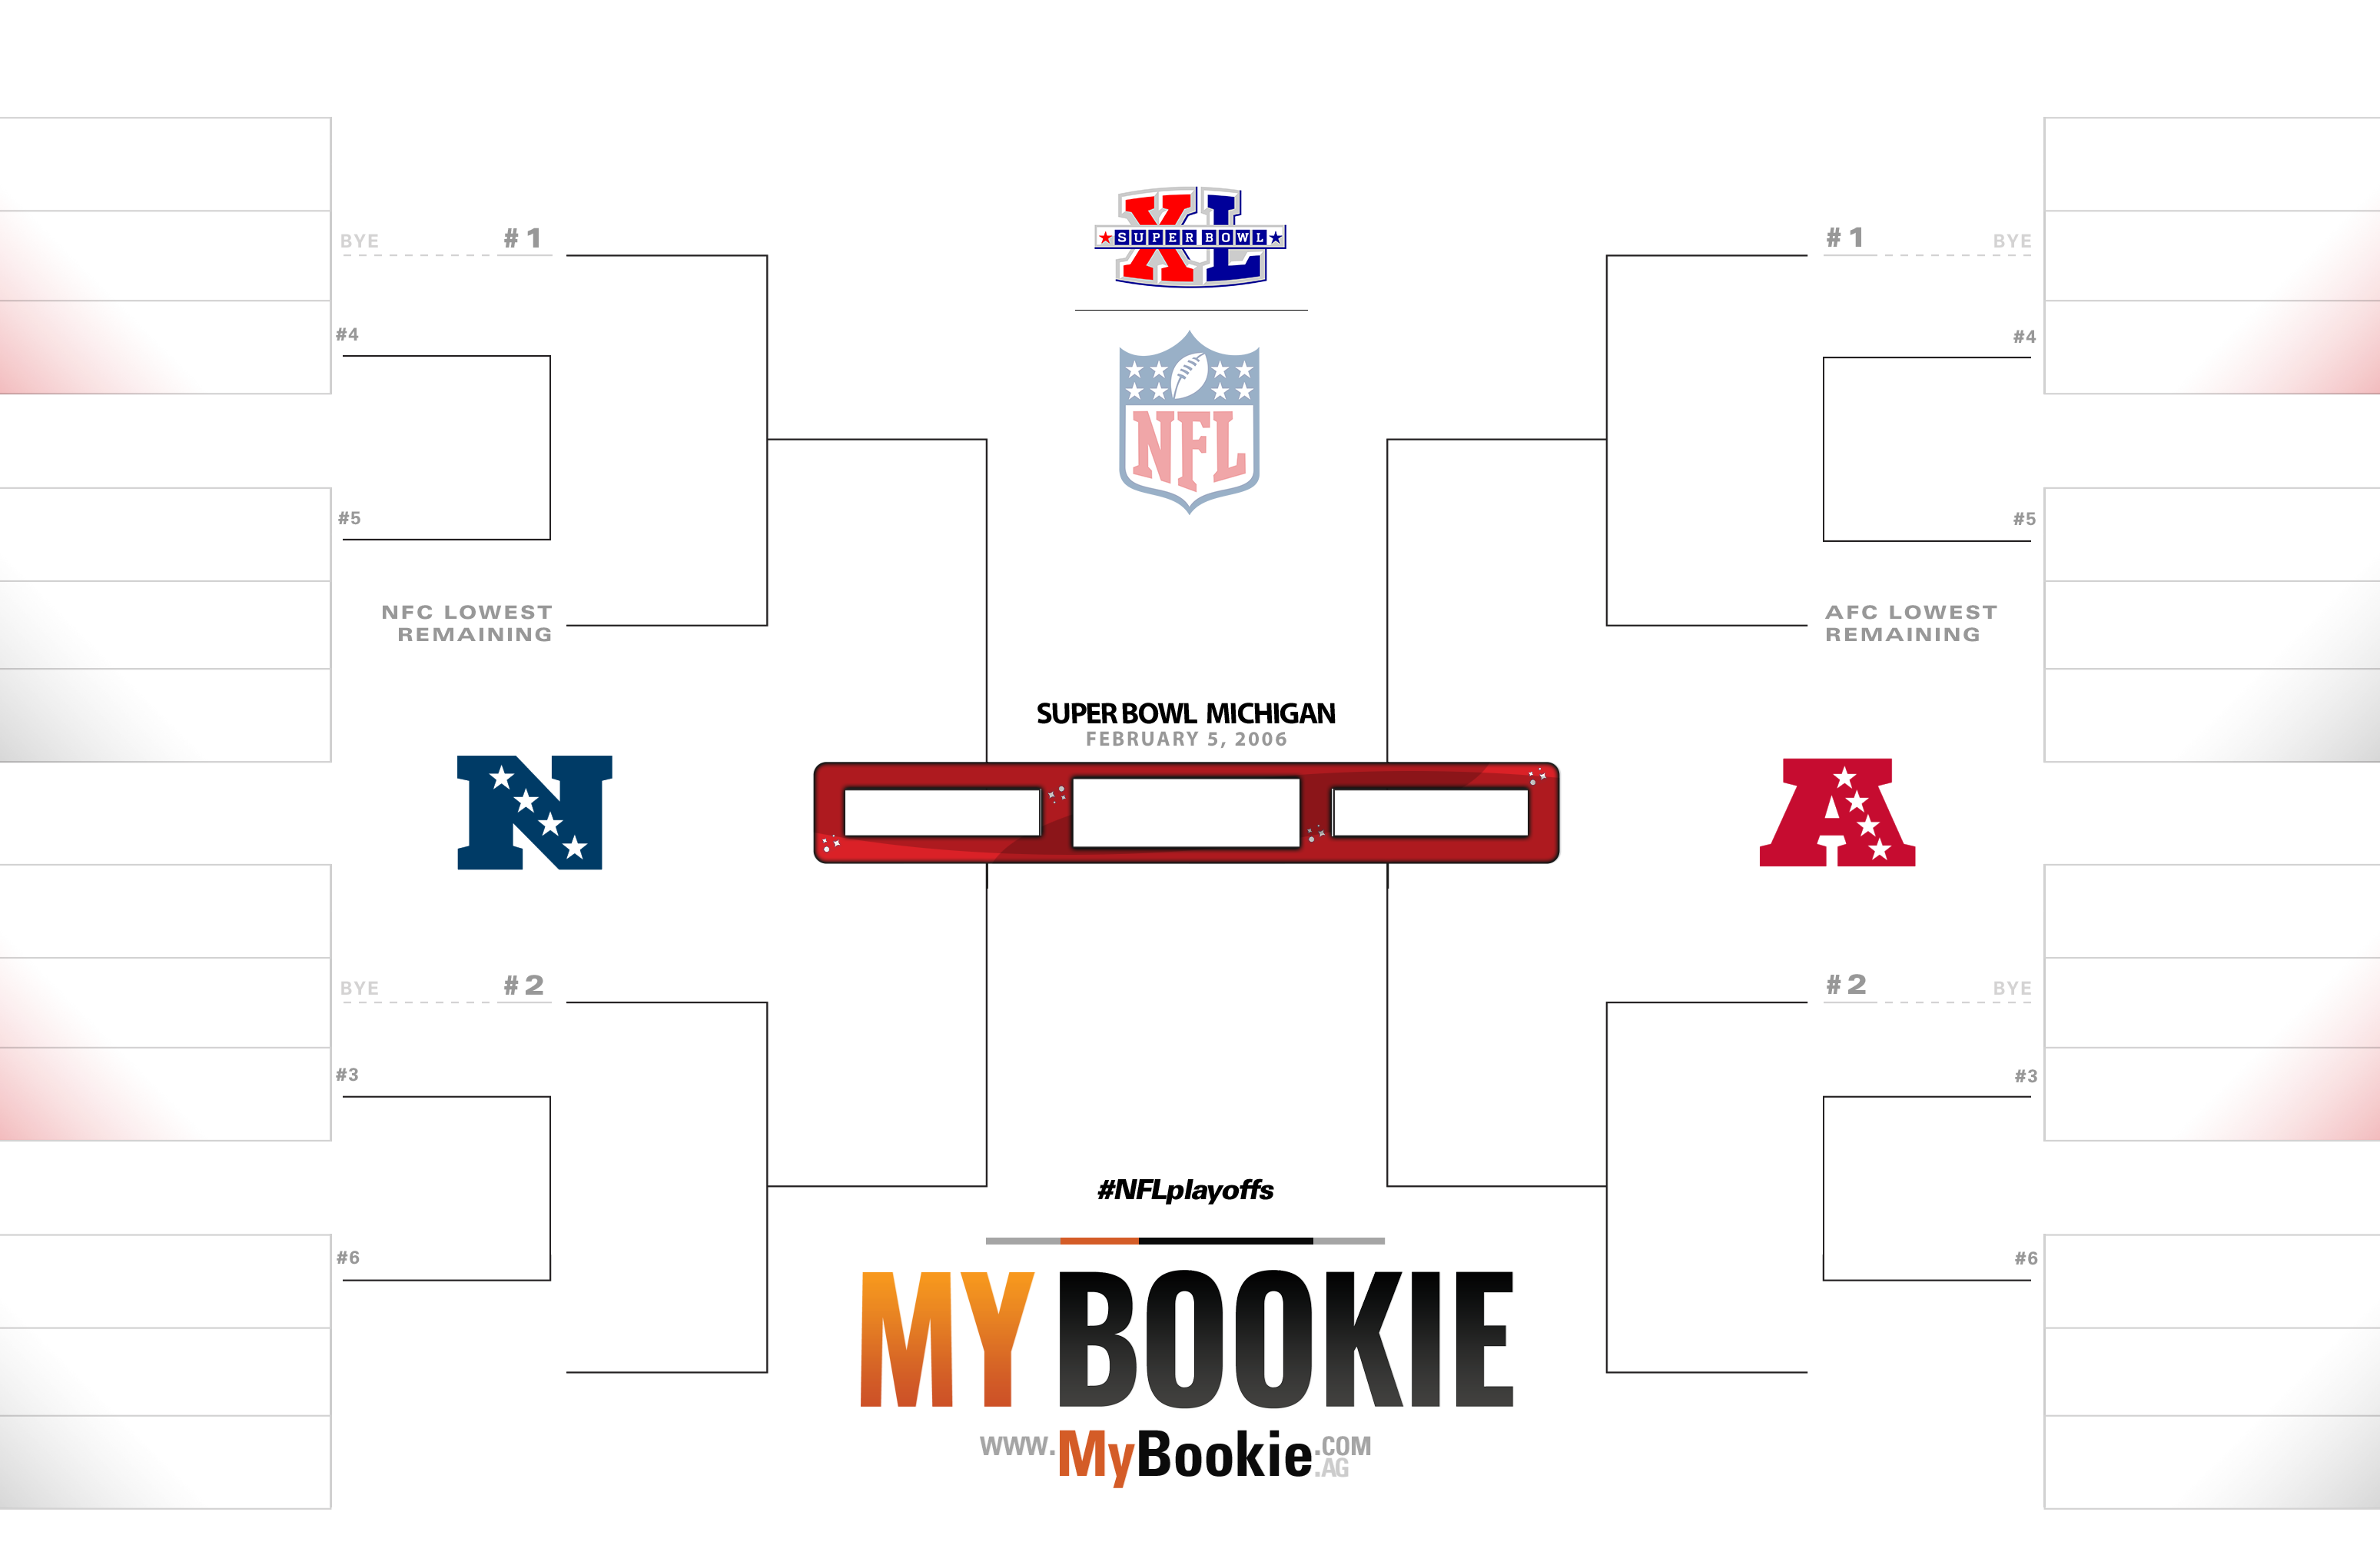 NFL Playoffs / Superbowl 2006 Printable Bracket